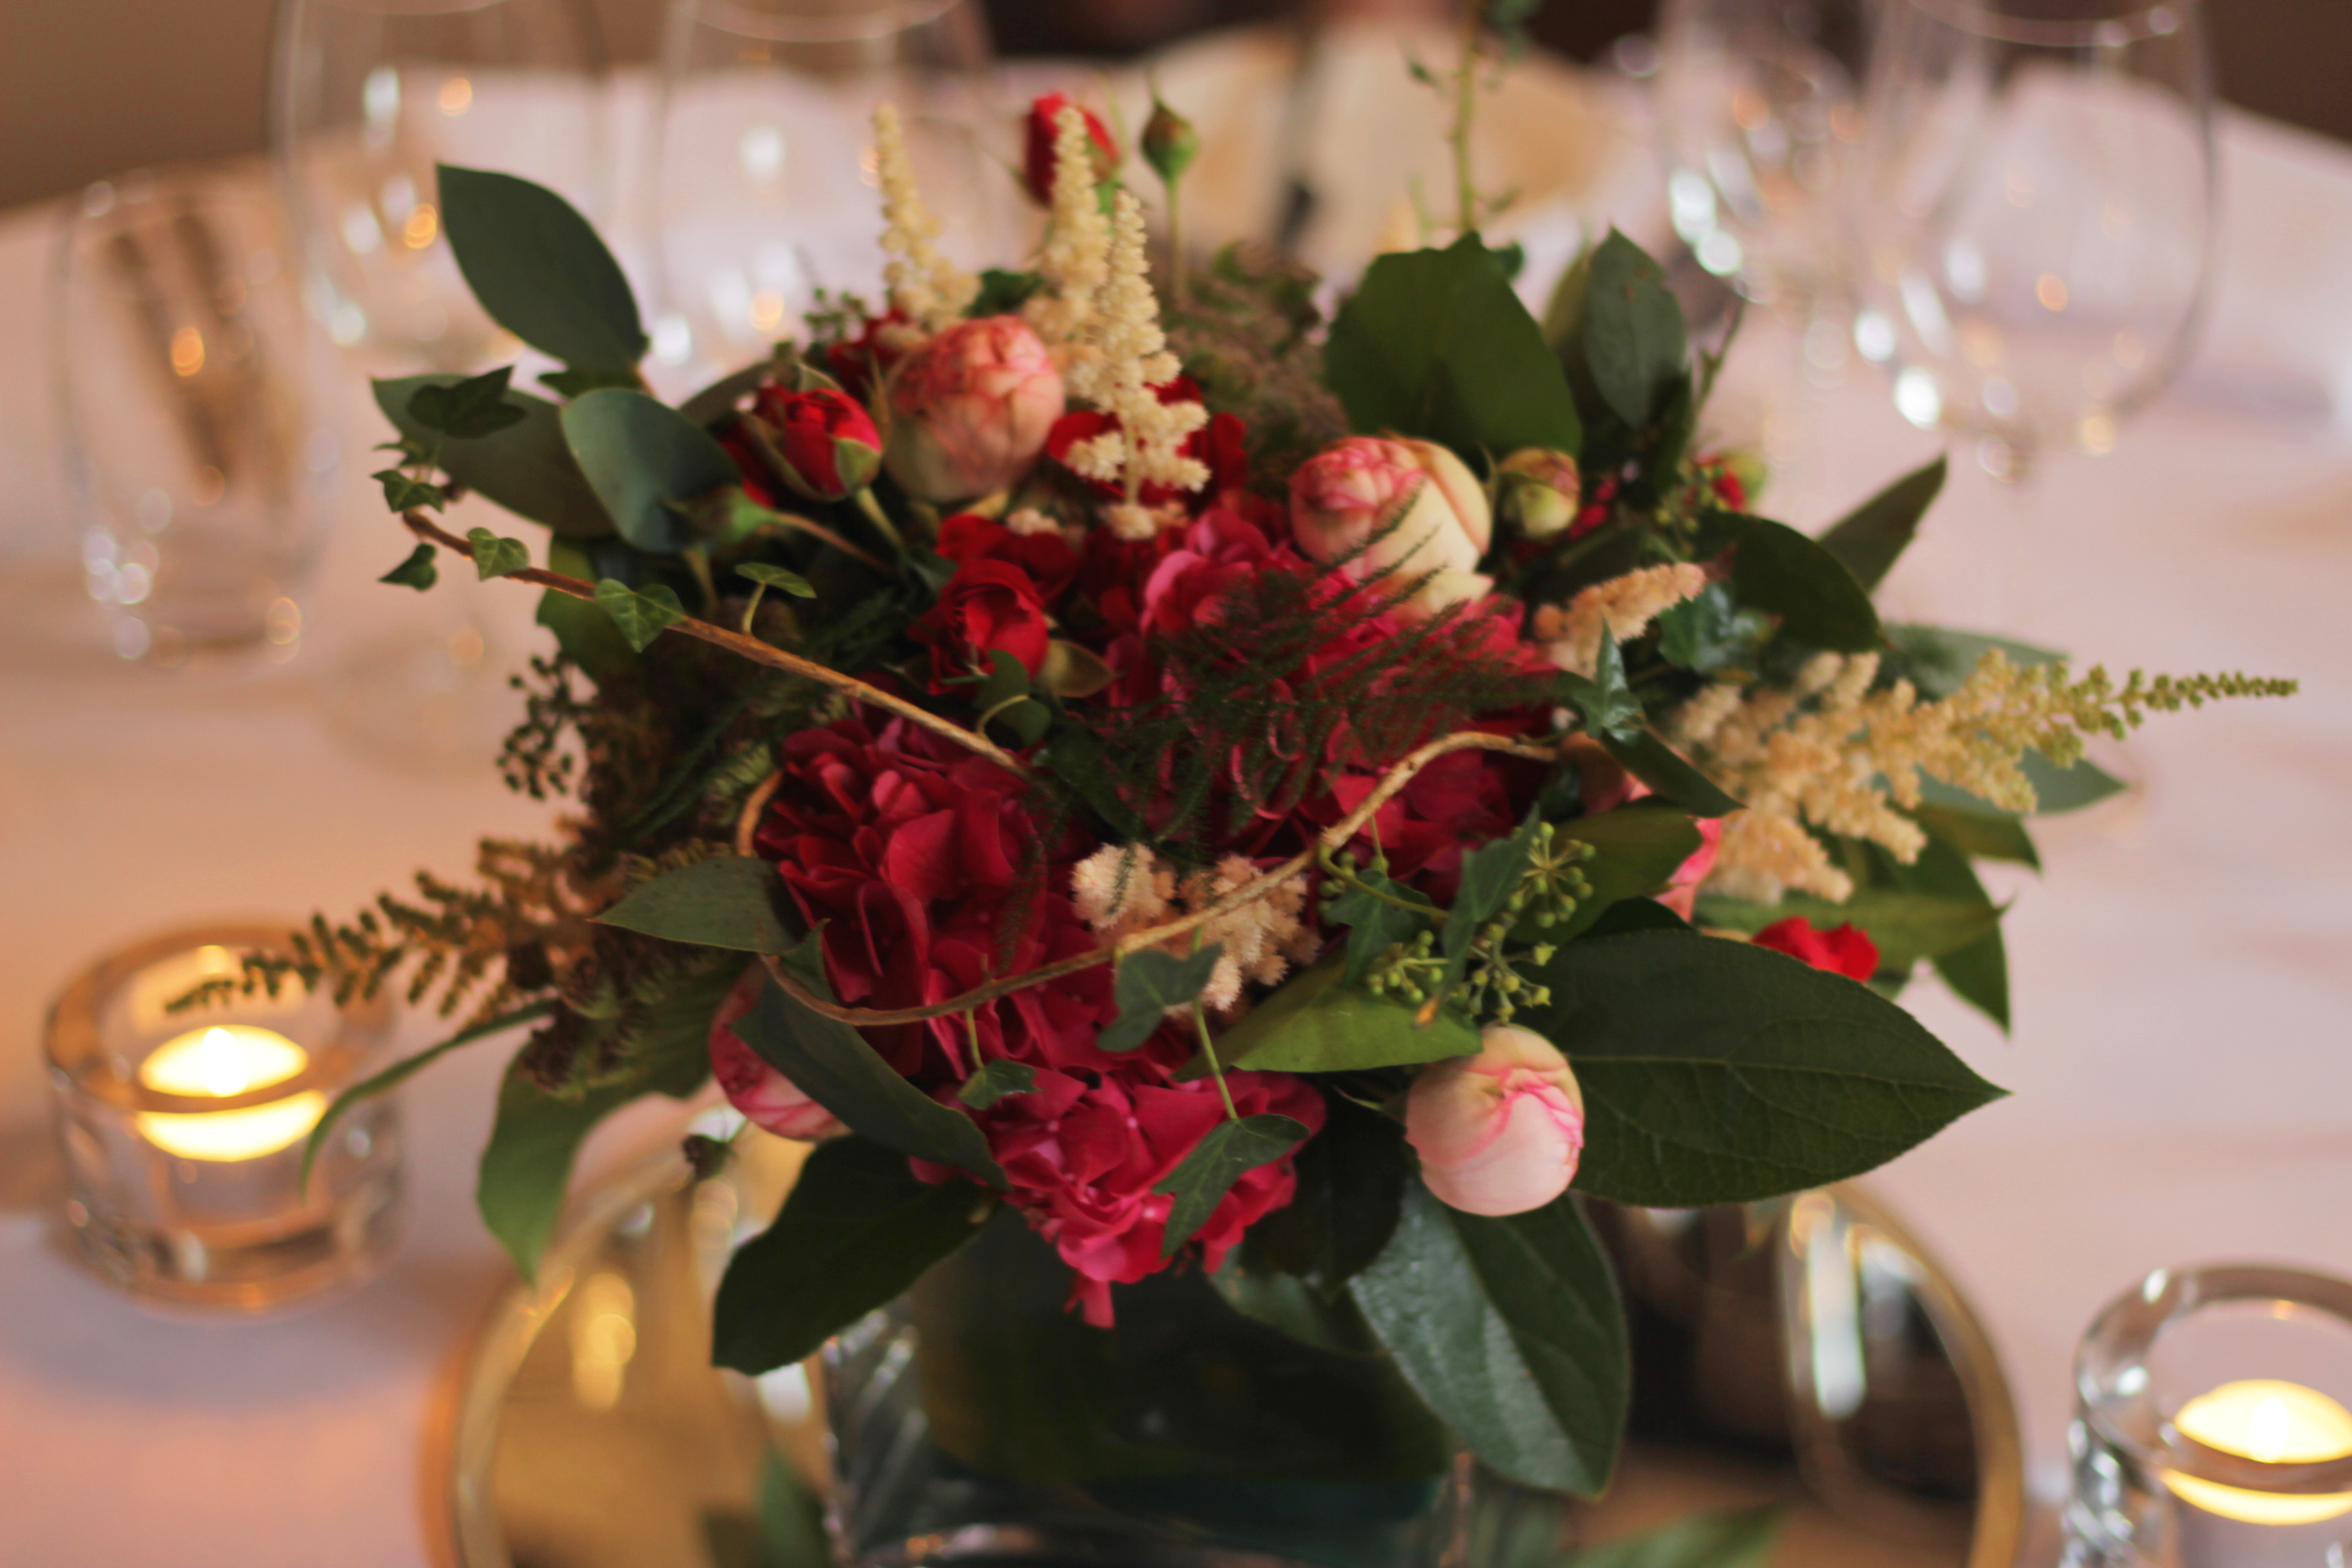 Blooming Amazing, table arrangement 1, No. 25 Autumn Wedding Open Evening, No. 25 Autumn Wedding Open Evening, No 25 Fitzwilliam Place, weddings at No. 25 Fitzwilliam Place, Dublin Weddings. City Centre weddings